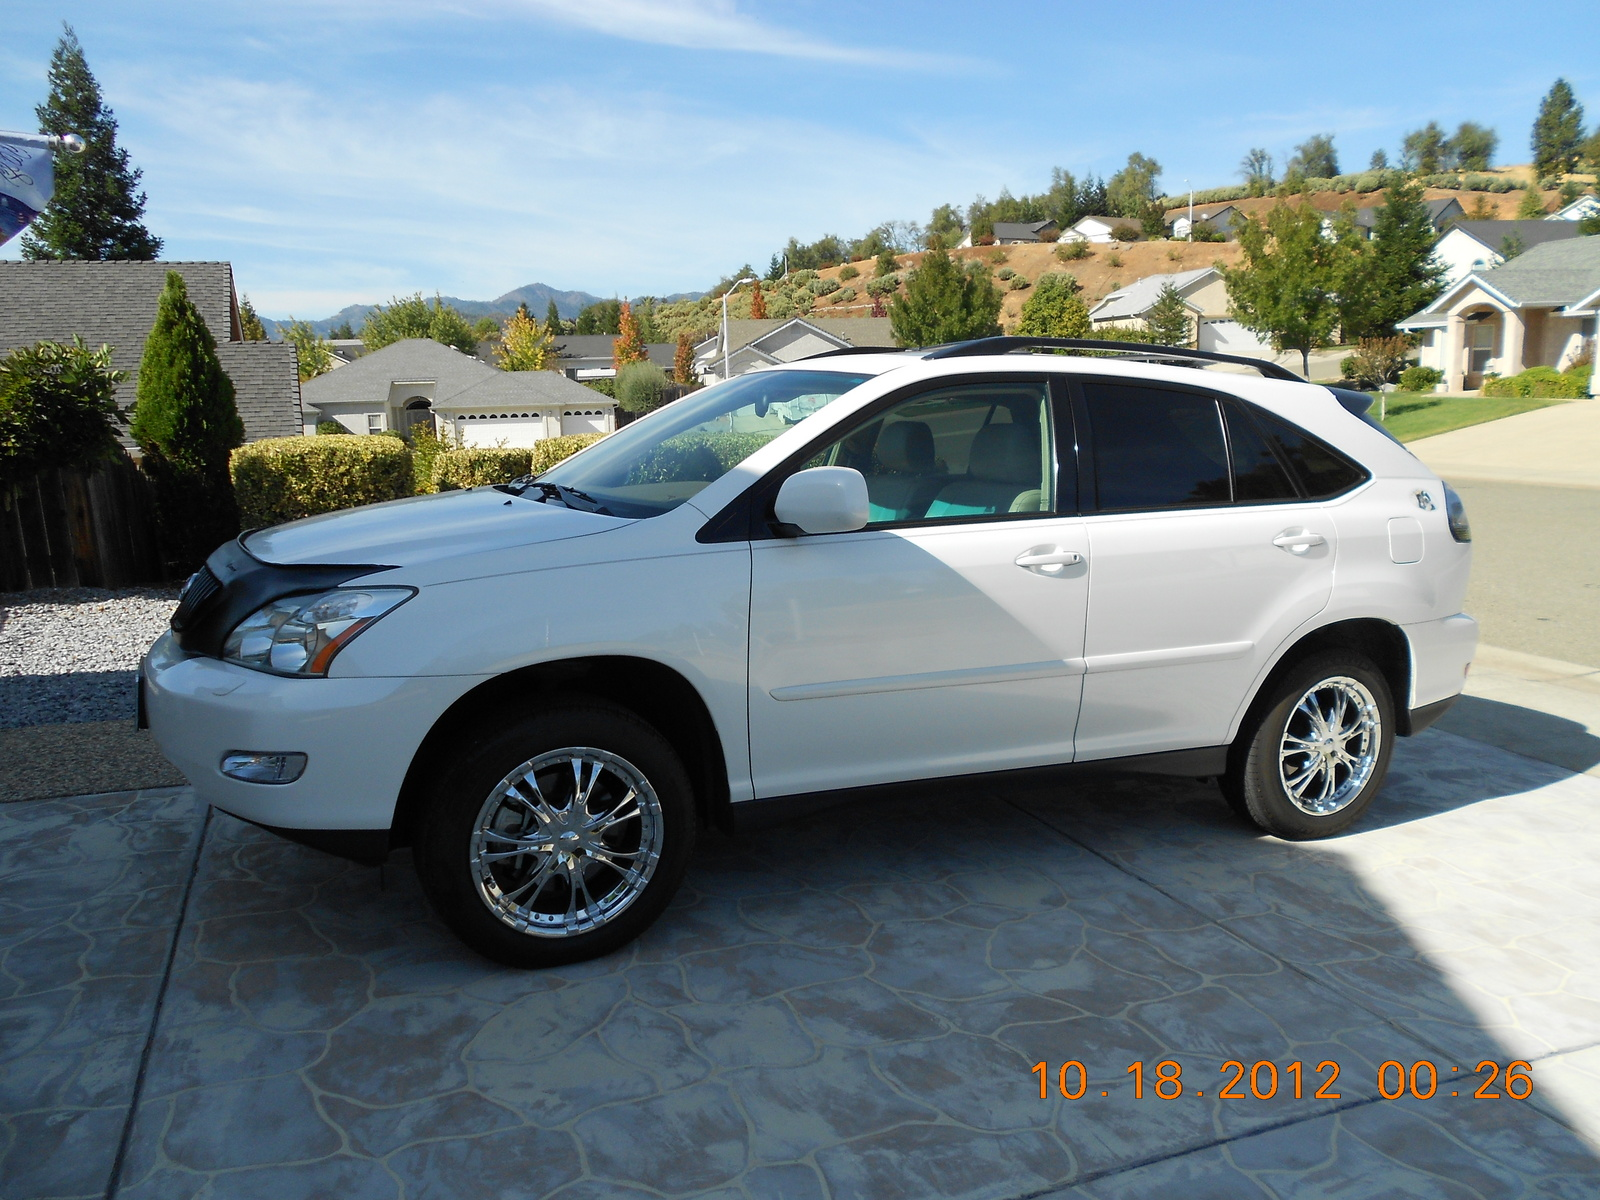 Lexus RX 330 2005 photo - 3